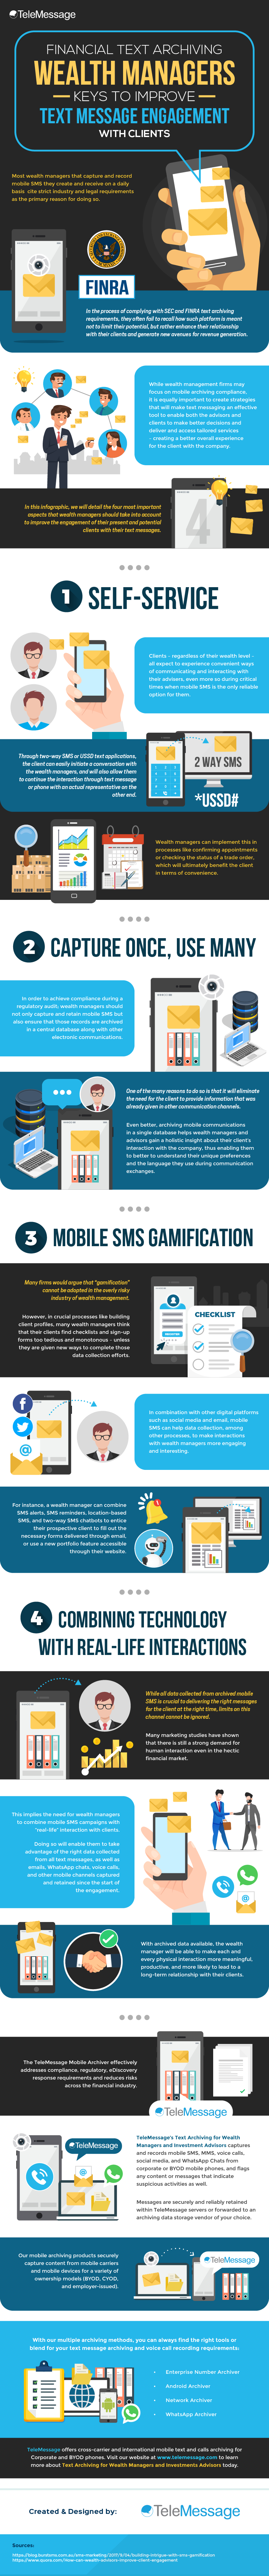 Financial Text Archiving – Wealth Managers Keys to Improve Text Message Engagement with Clients - Infographic